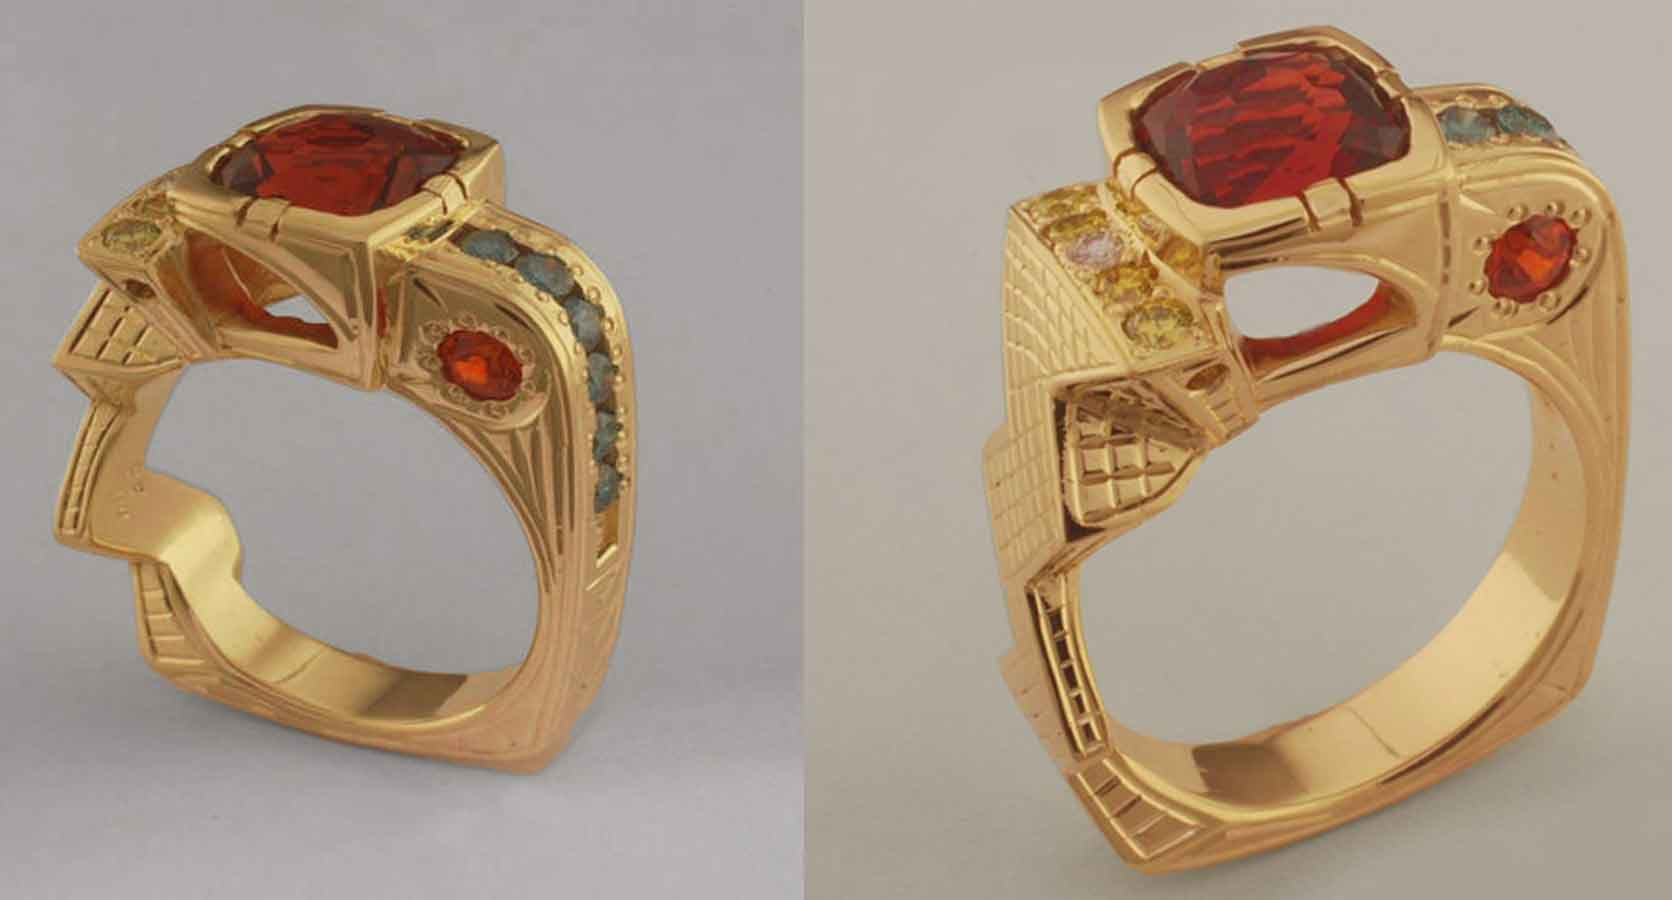 Gypsy Rose Garnet and Diamonds in a Mayan Designer Gold Ring